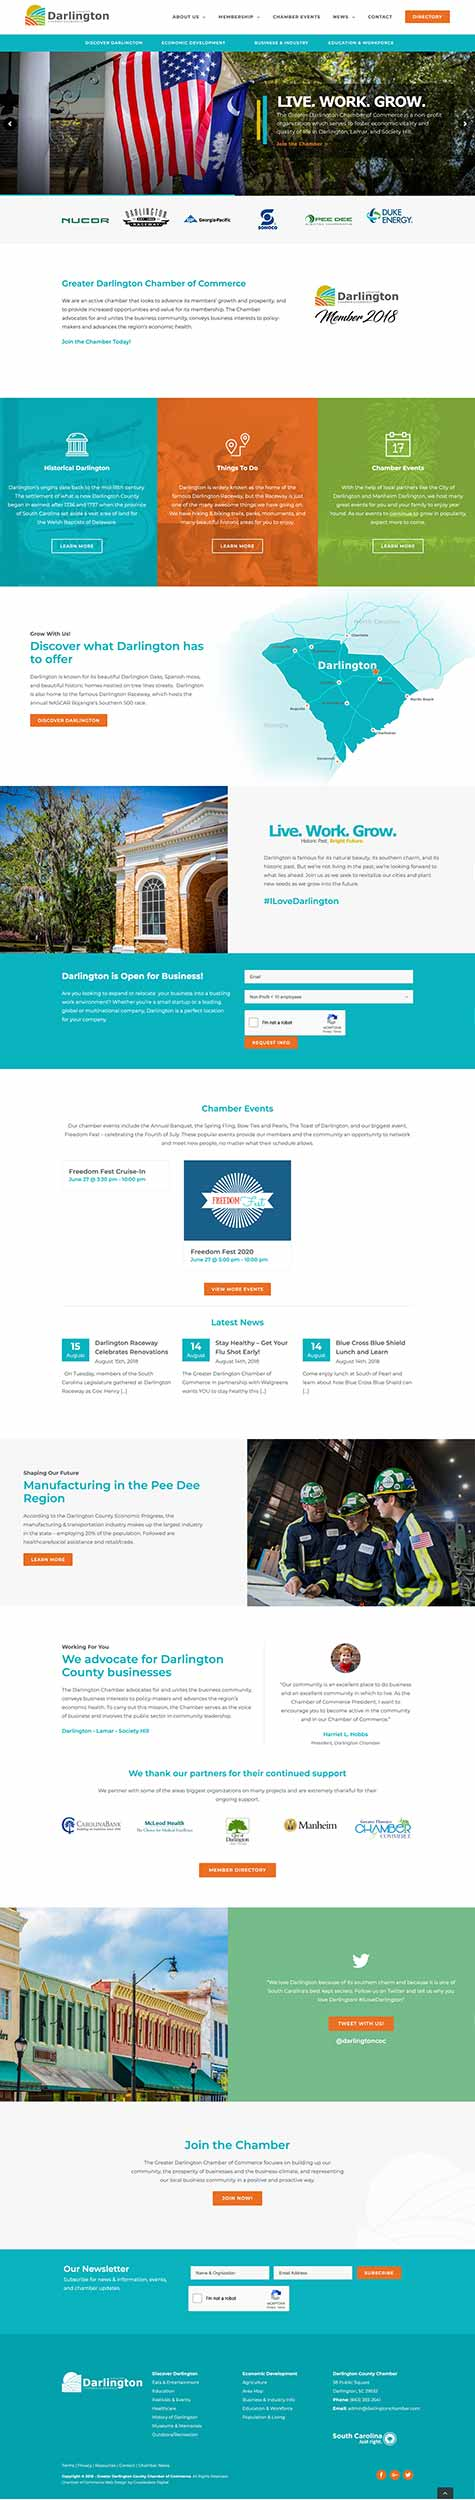 Web Design Digital Marketing Company Florence Sc Crowdedbox Digital